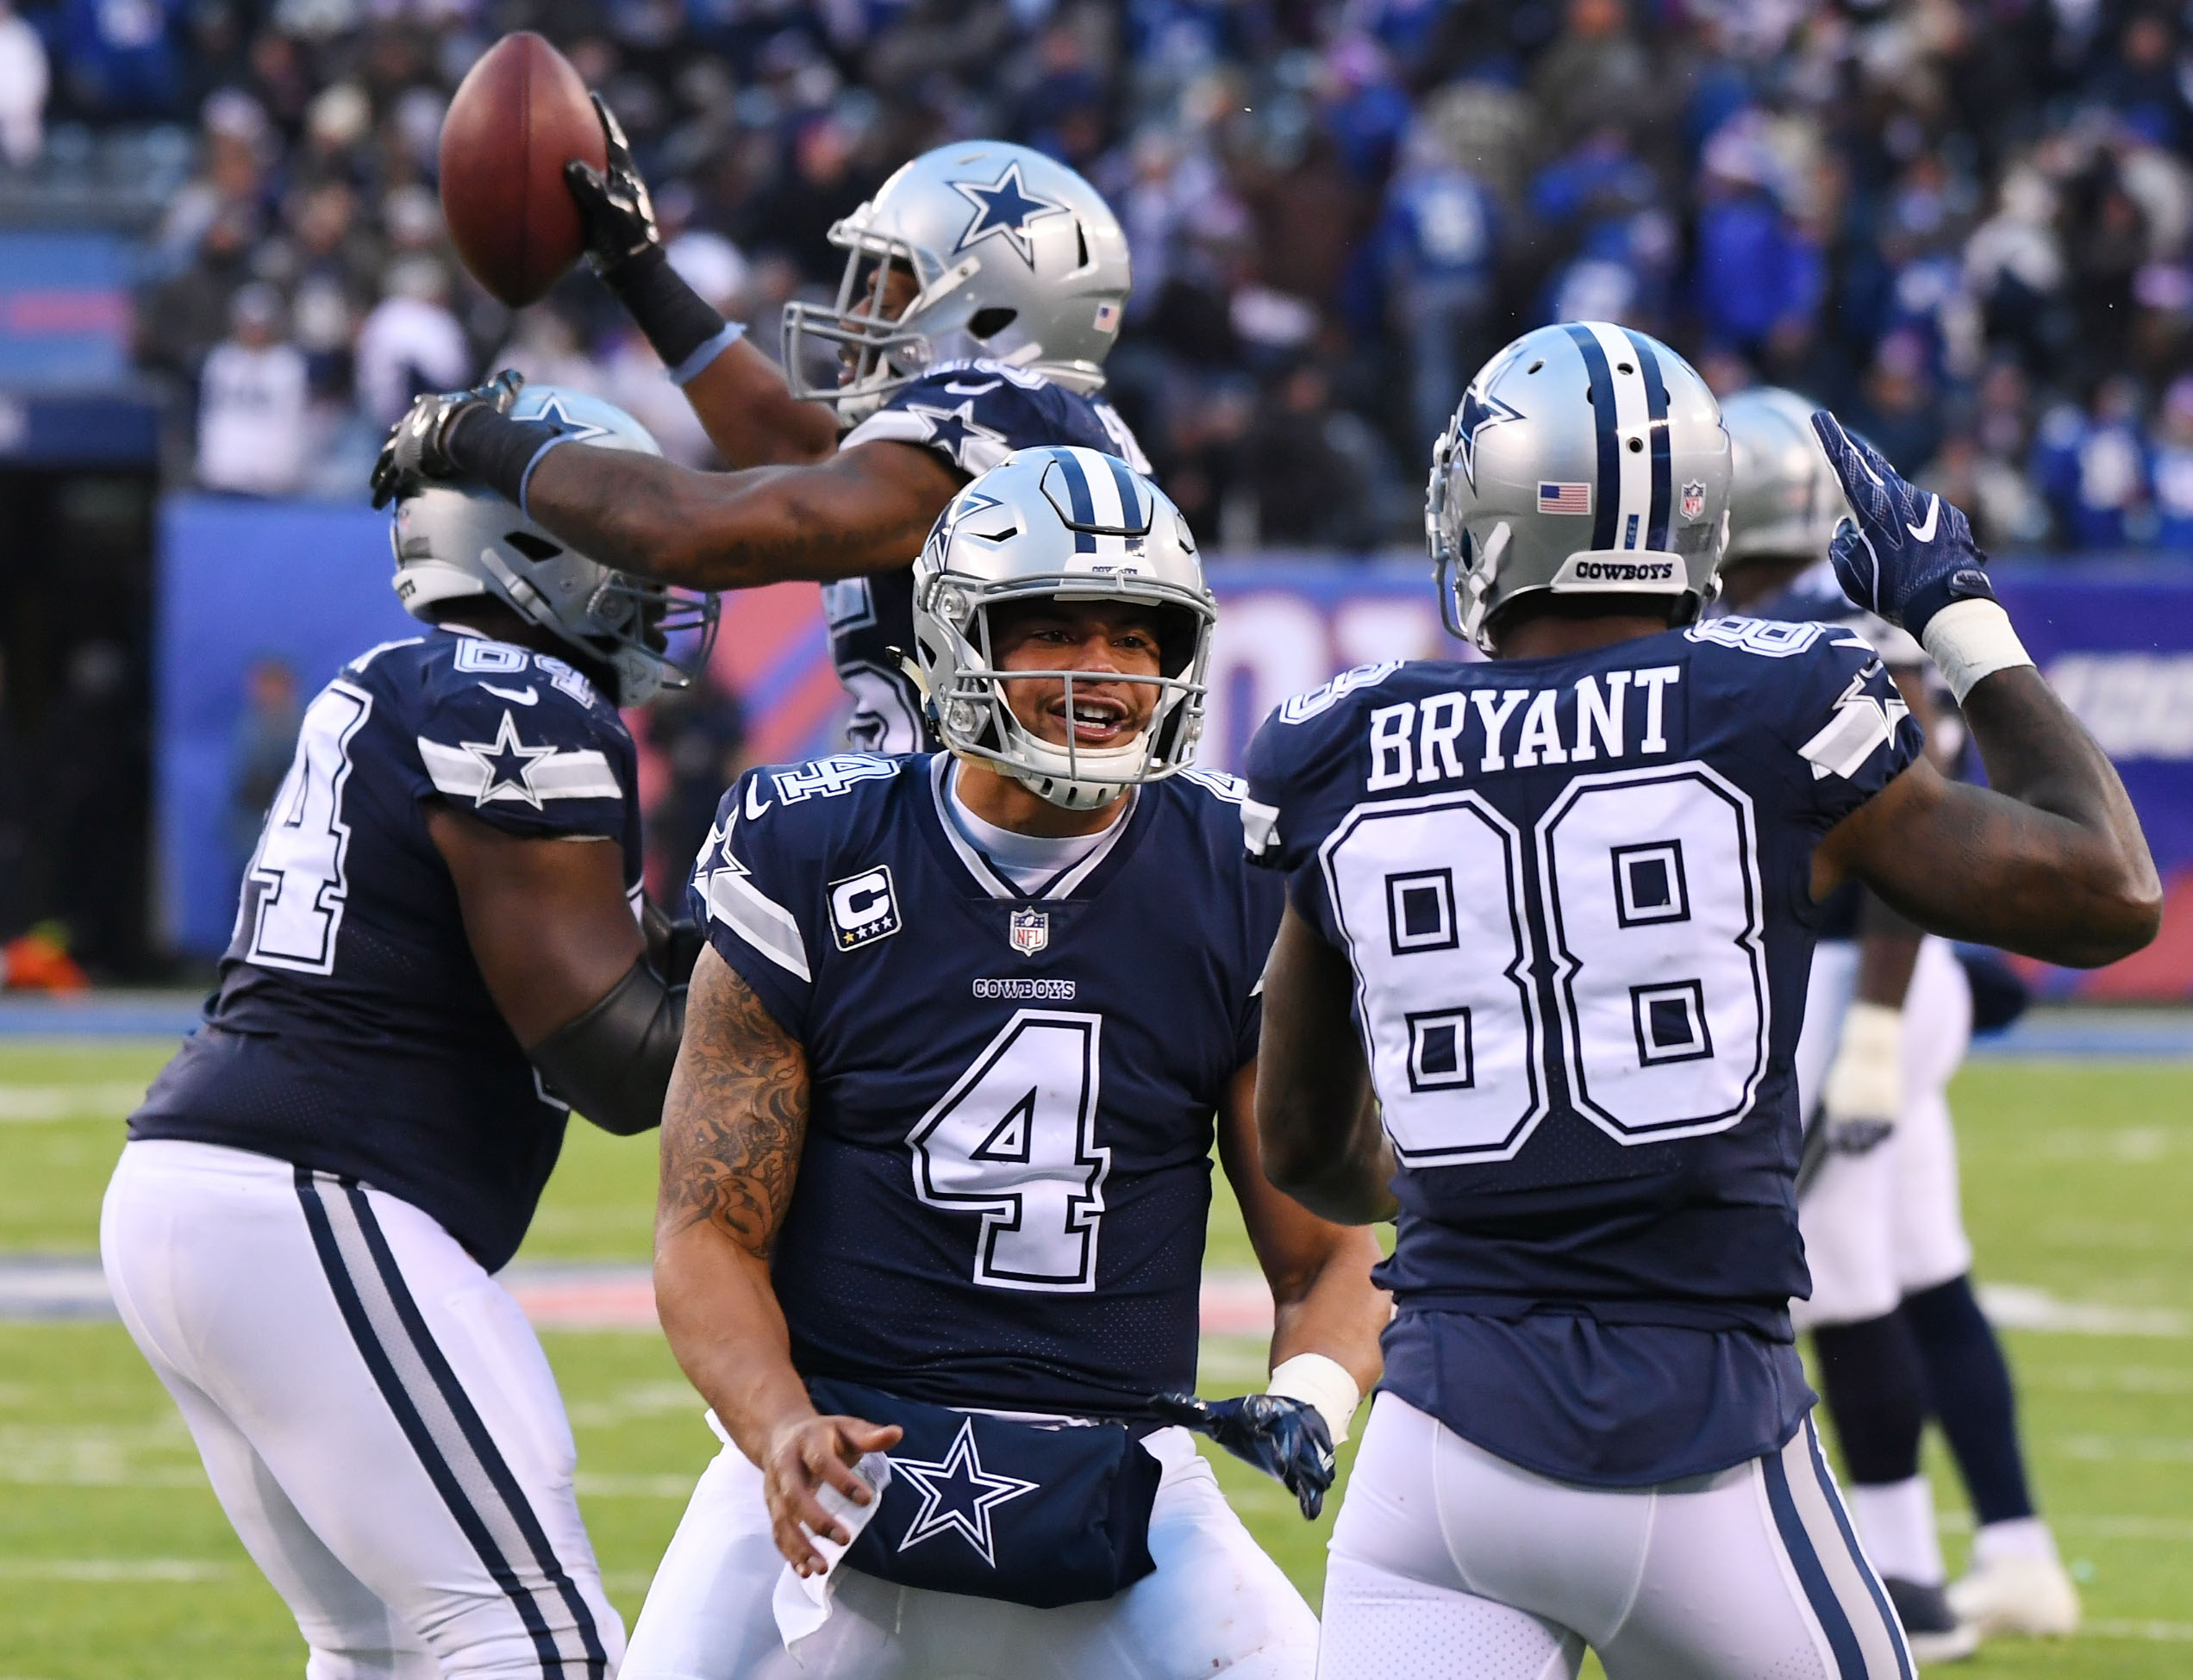 (EDITORS NOTE: caption correction) Dec 10, 2017; East Rutherford, NJ, USA; Dallas Cowboys quarterback Dak Prescott (4) and wide receiver Dez Bryant (88) celebrate a touchdown by running back Rod Smith (with ball) in the fourth quarter against the New York Giants during a NFL football game at MetLife Stadium. Mandatory Credit: Robert Deutsch-USA TODAY Sports